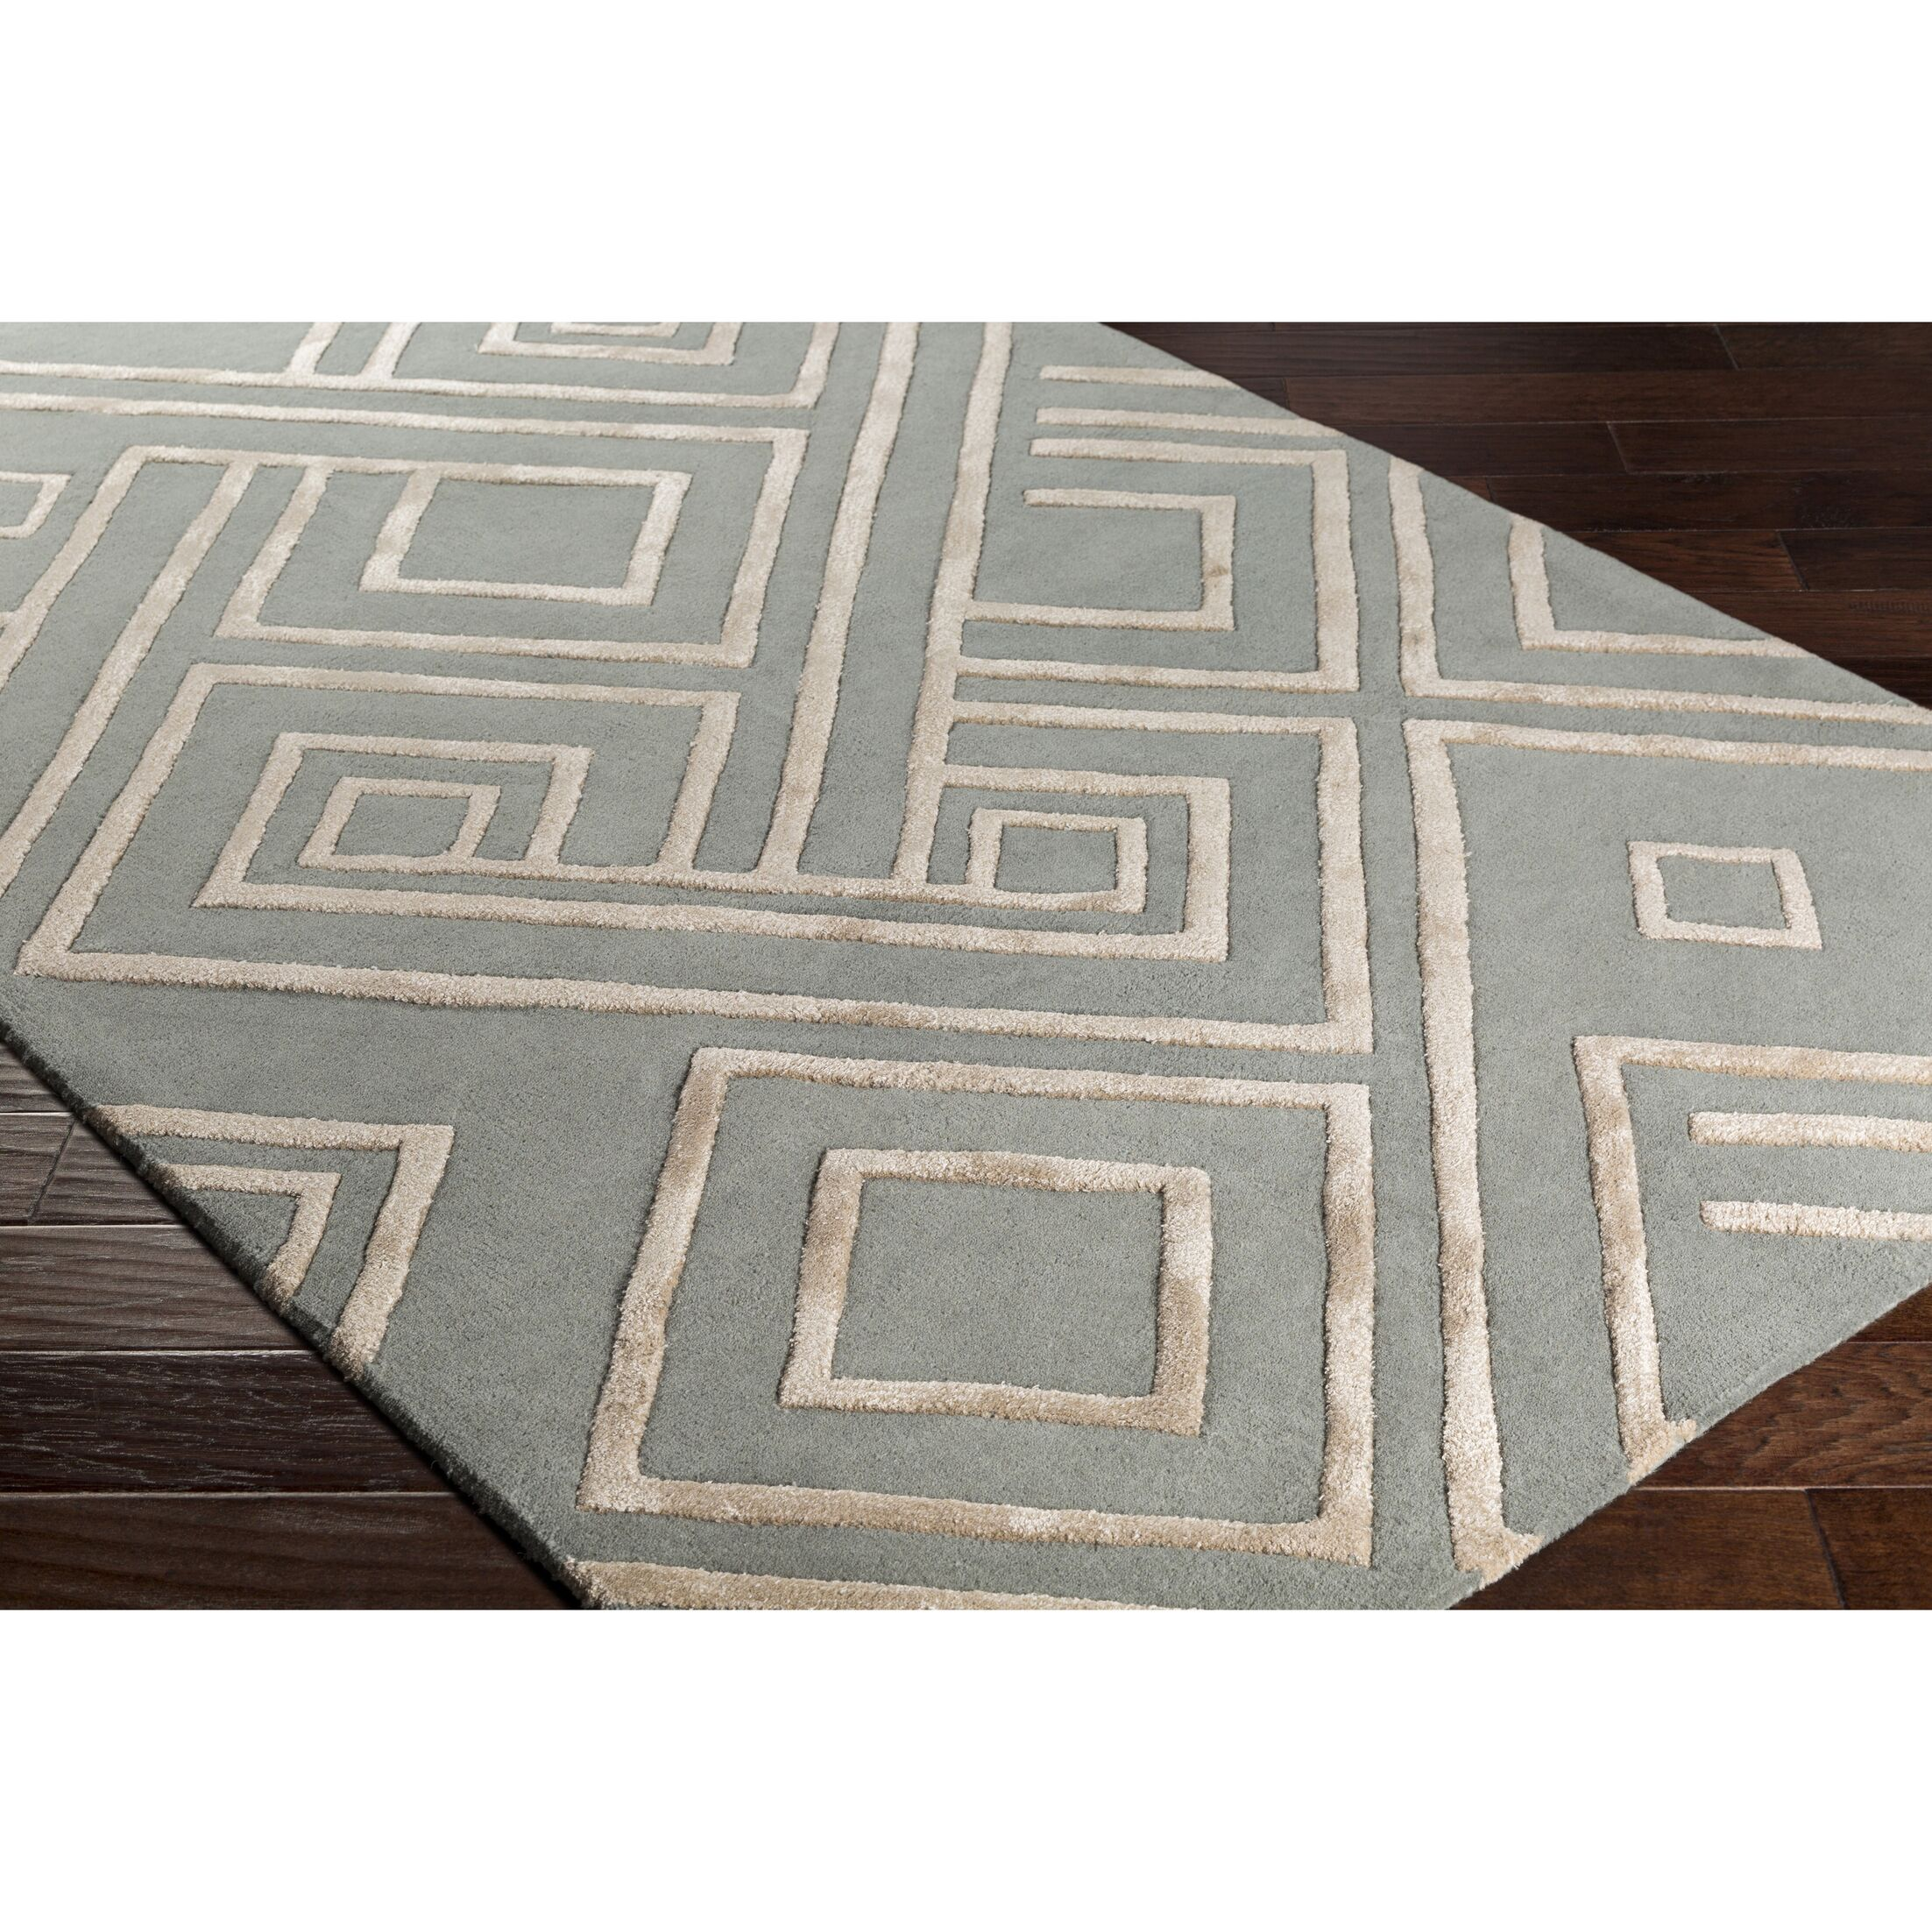 Vazquez Hand-Tufted Rectangle Green/Neutral Area Rug Rug Size: Rectangle 5' x 7'6